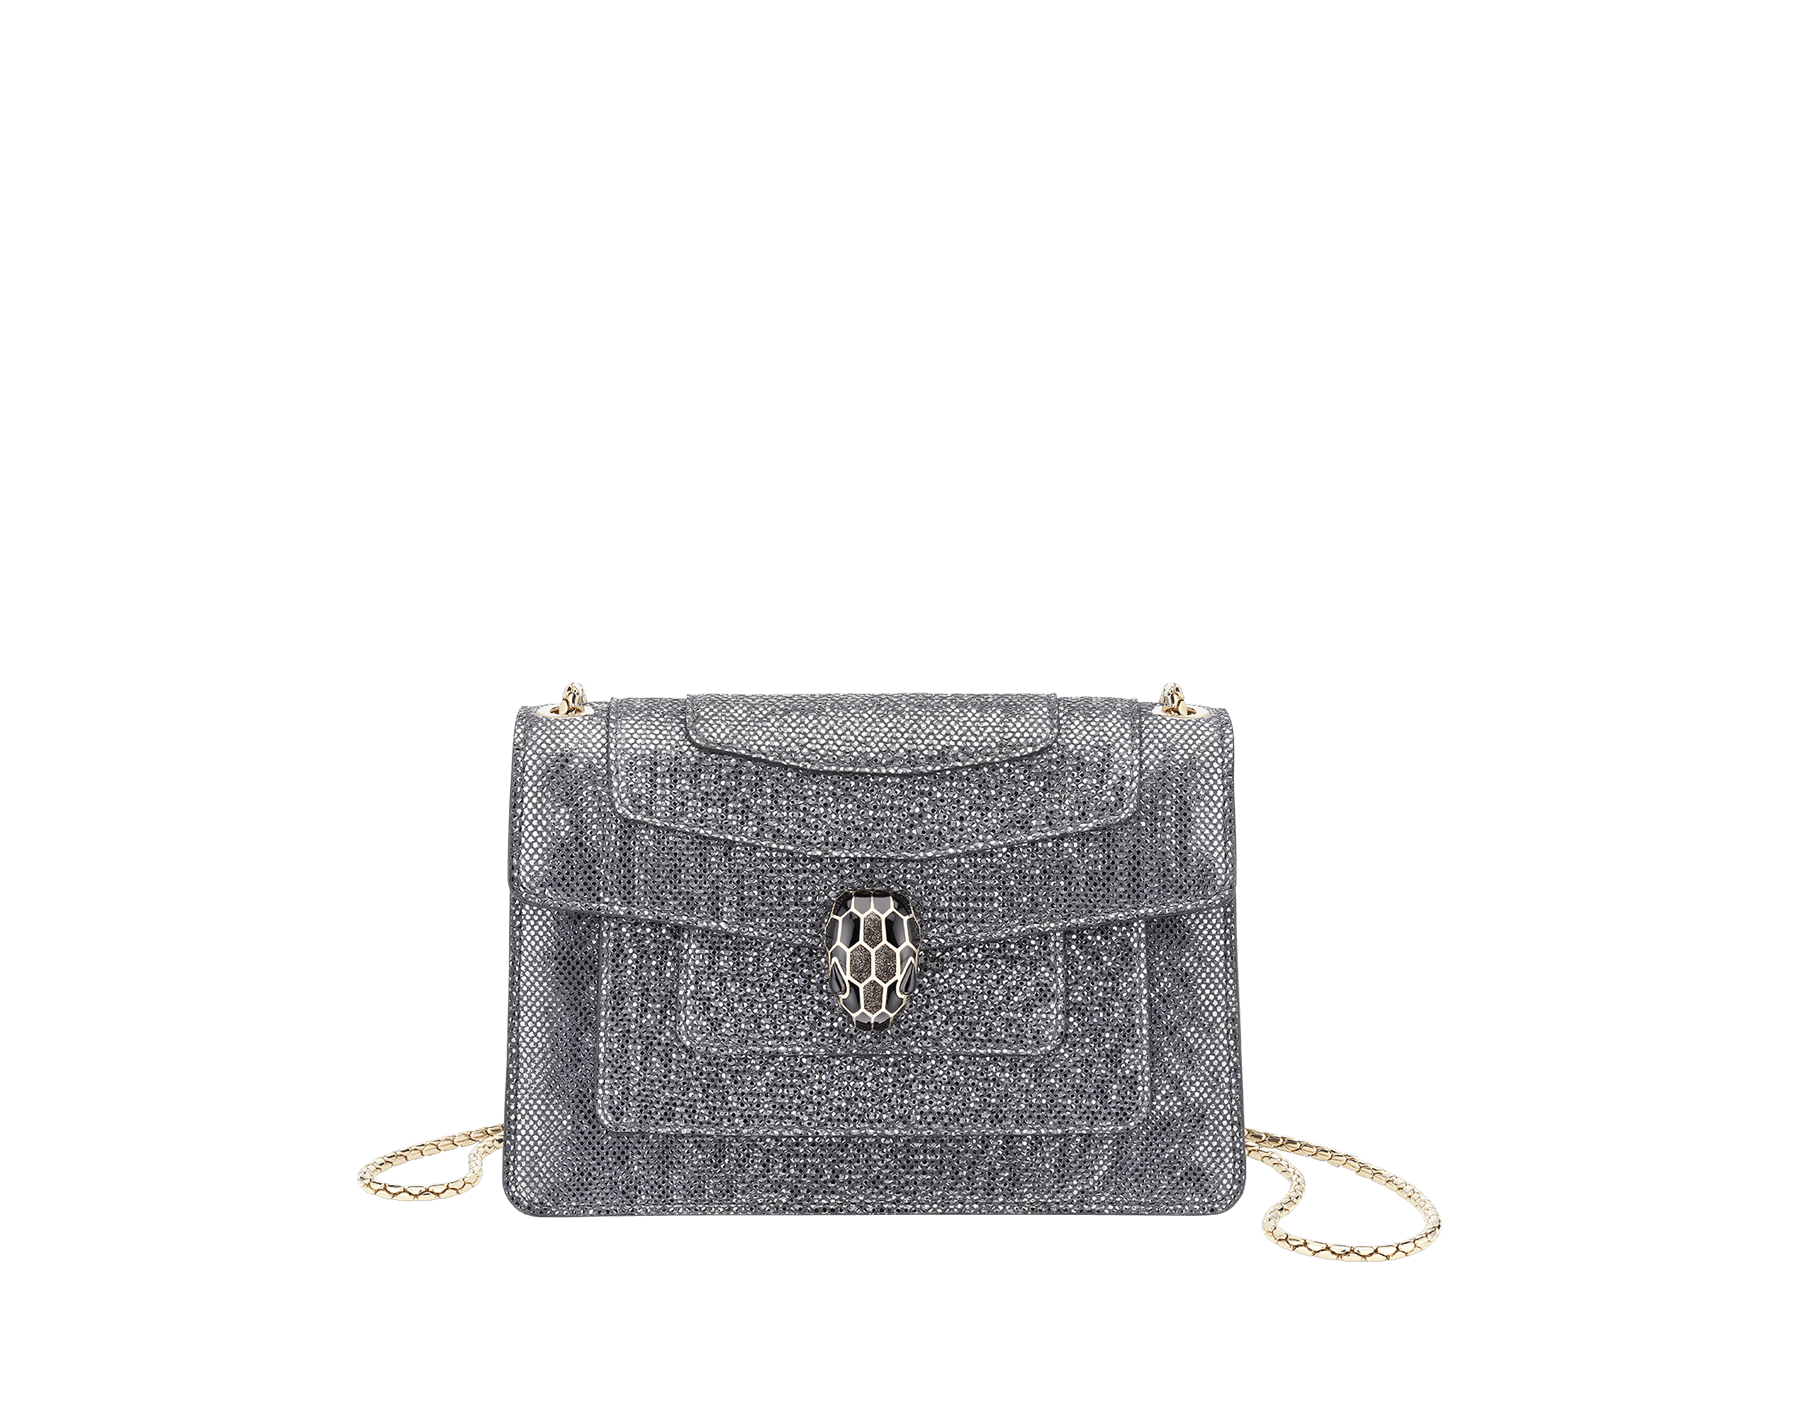 Serpenti Forever mini crossbody bag in white agate metallic karungskin. Brass light gold-plated snake head closure in black and white enamel, with black onyx eyes. 986-MK image 1